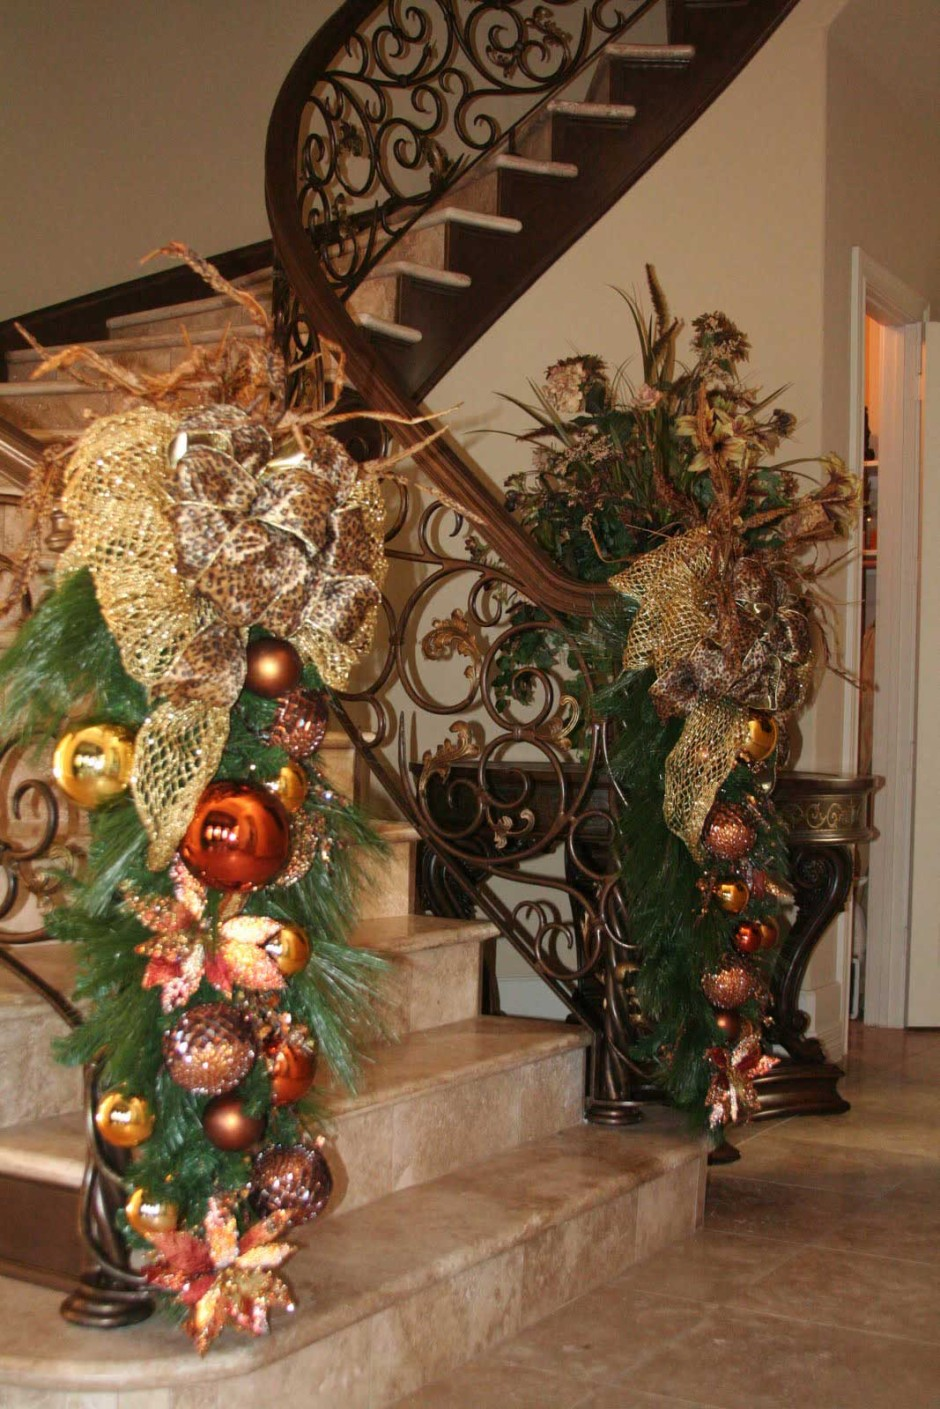 Christmas Staircase Decorations Ideas For This Year. Christmas Decorations From Household Items. Christmas Decorations Using Jars. Places To Shop For Christmas Decorations. Christmas Decorations For Dining Room. Christmas Door Decorations Ideas For School. Christmas Tree Lights Keep Burning Out. Victorian Christmas Table Decorations. Disney Christmas Home Decorations